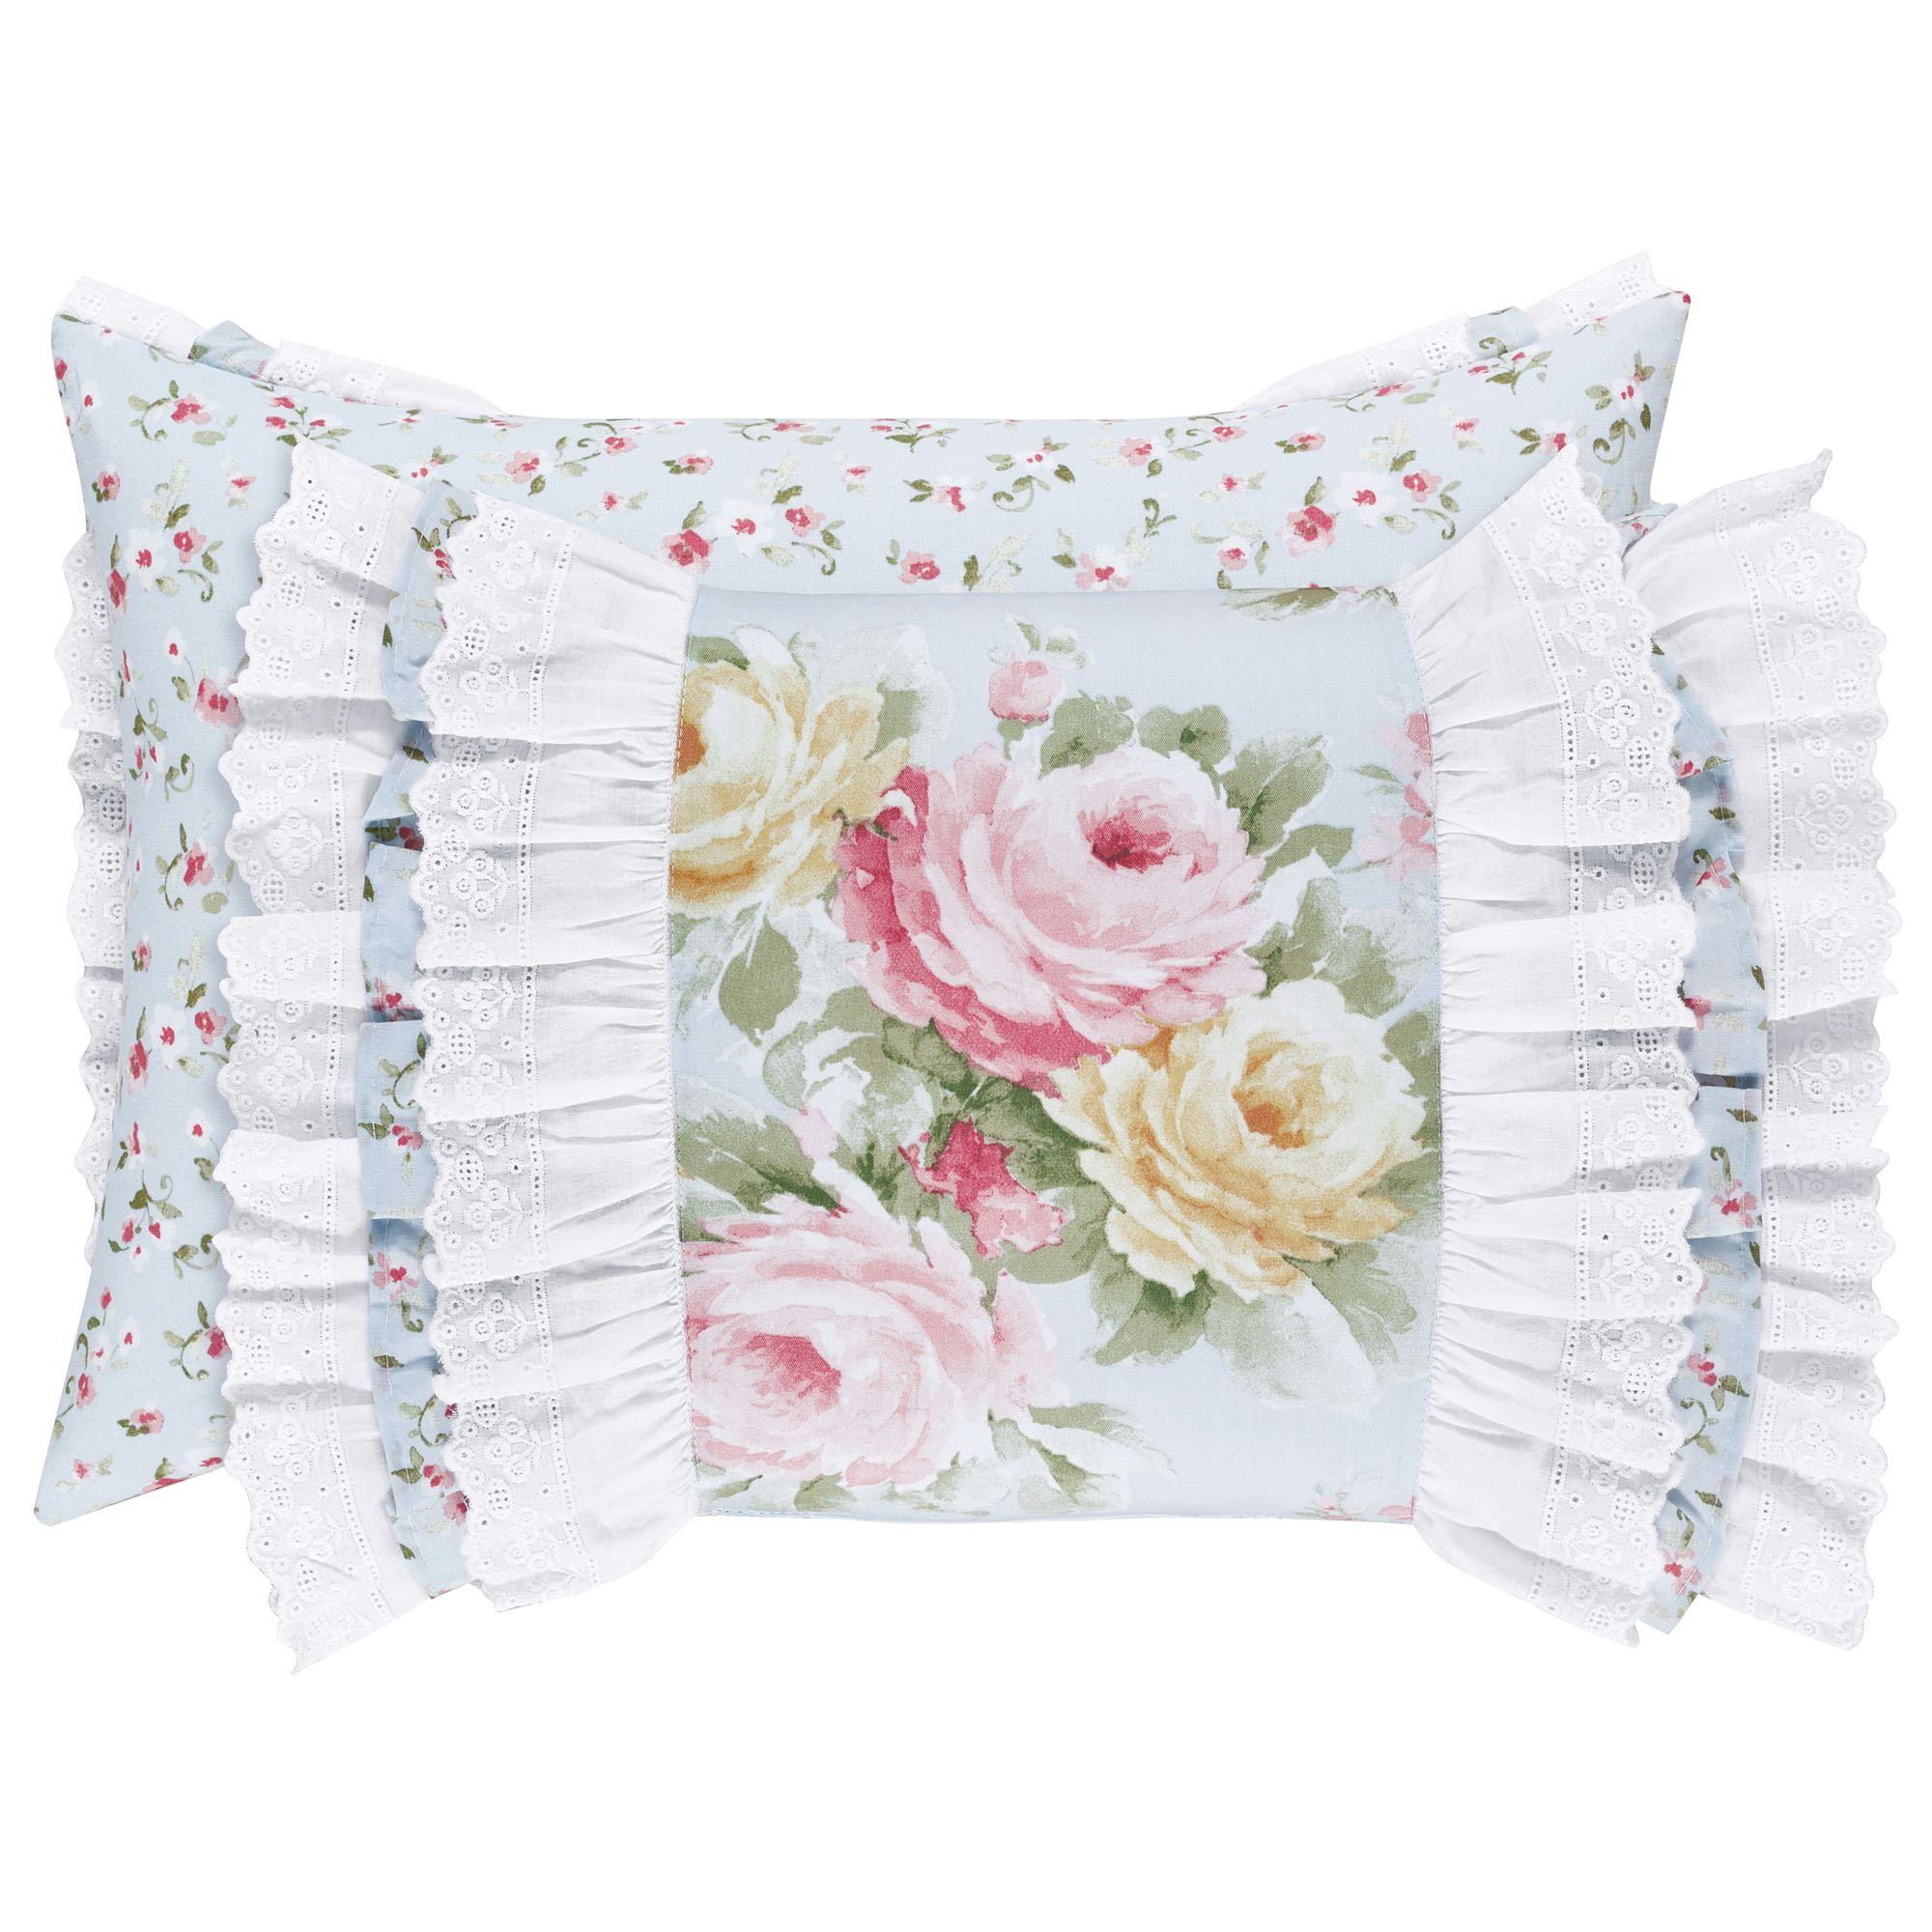 rose pillows pin cone candlewick pine layla grayce laylagrayce pale hill throw pink pillow decorative